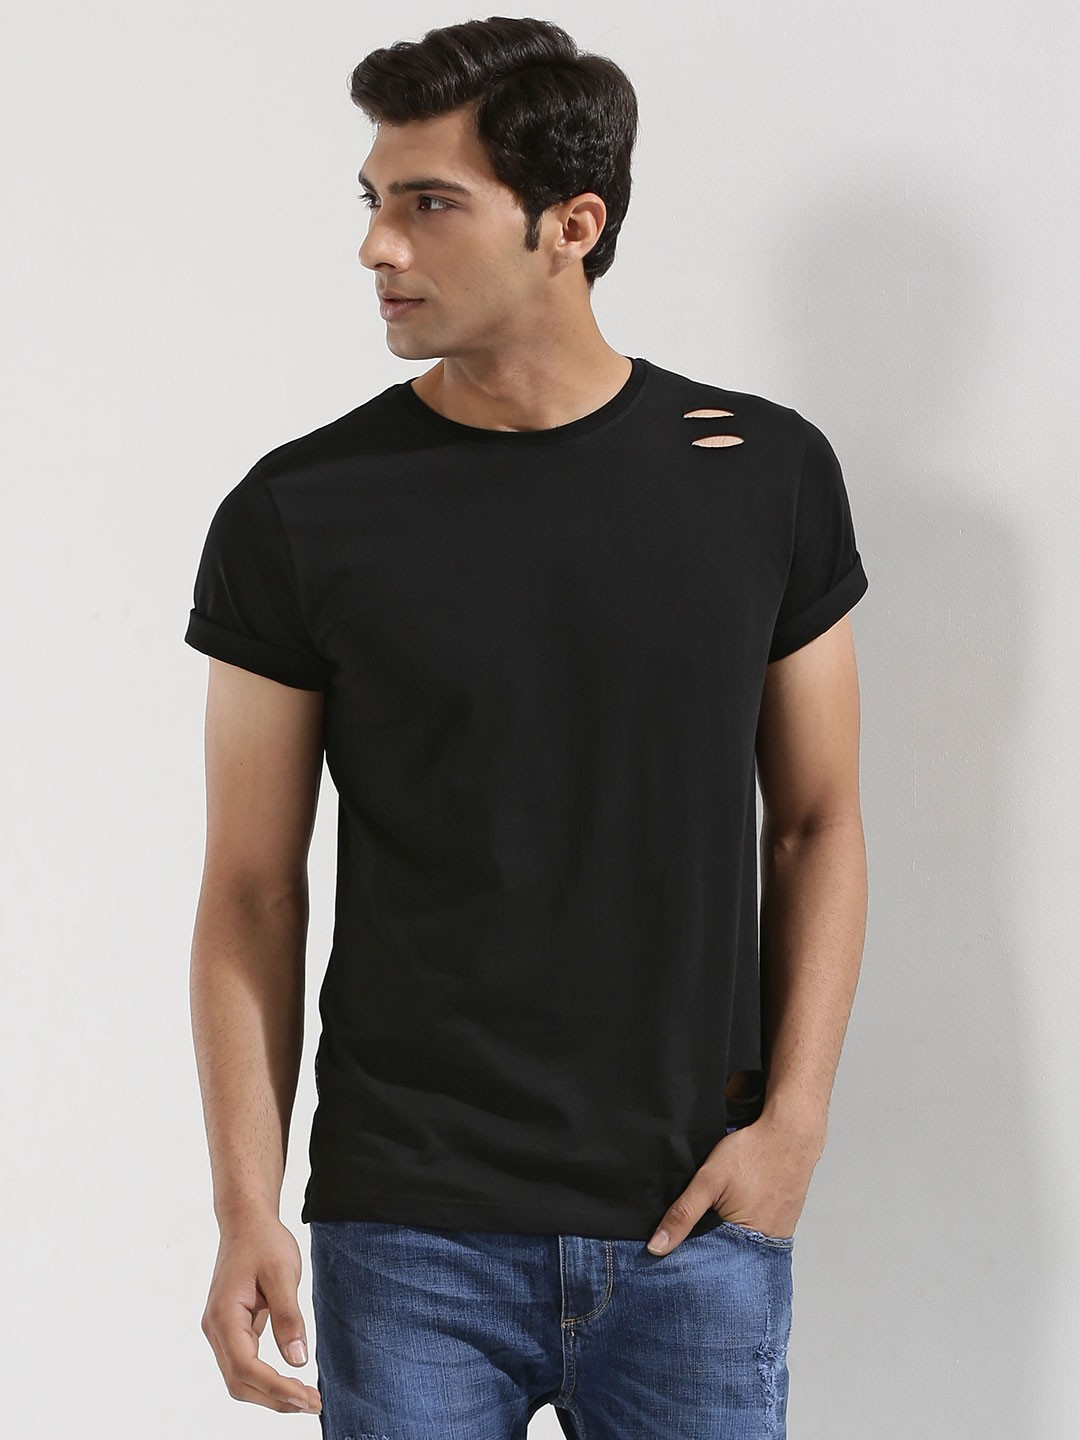 Black t shirt mens - Blue Saint Ripped T Shirt